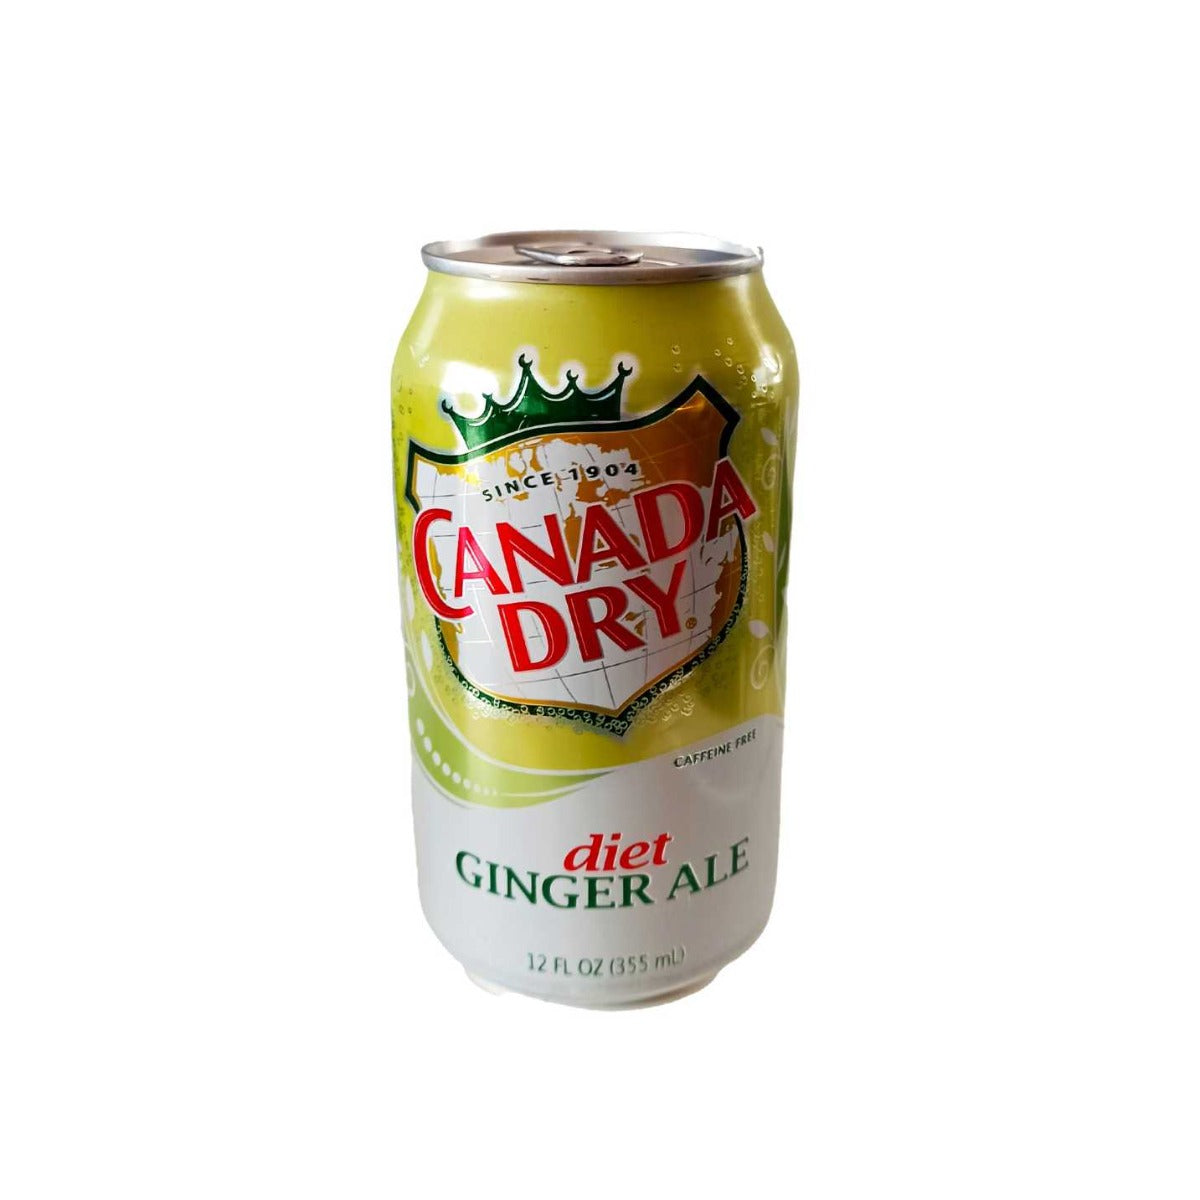 Canada Dry Ginger Ale Diet - טעימים